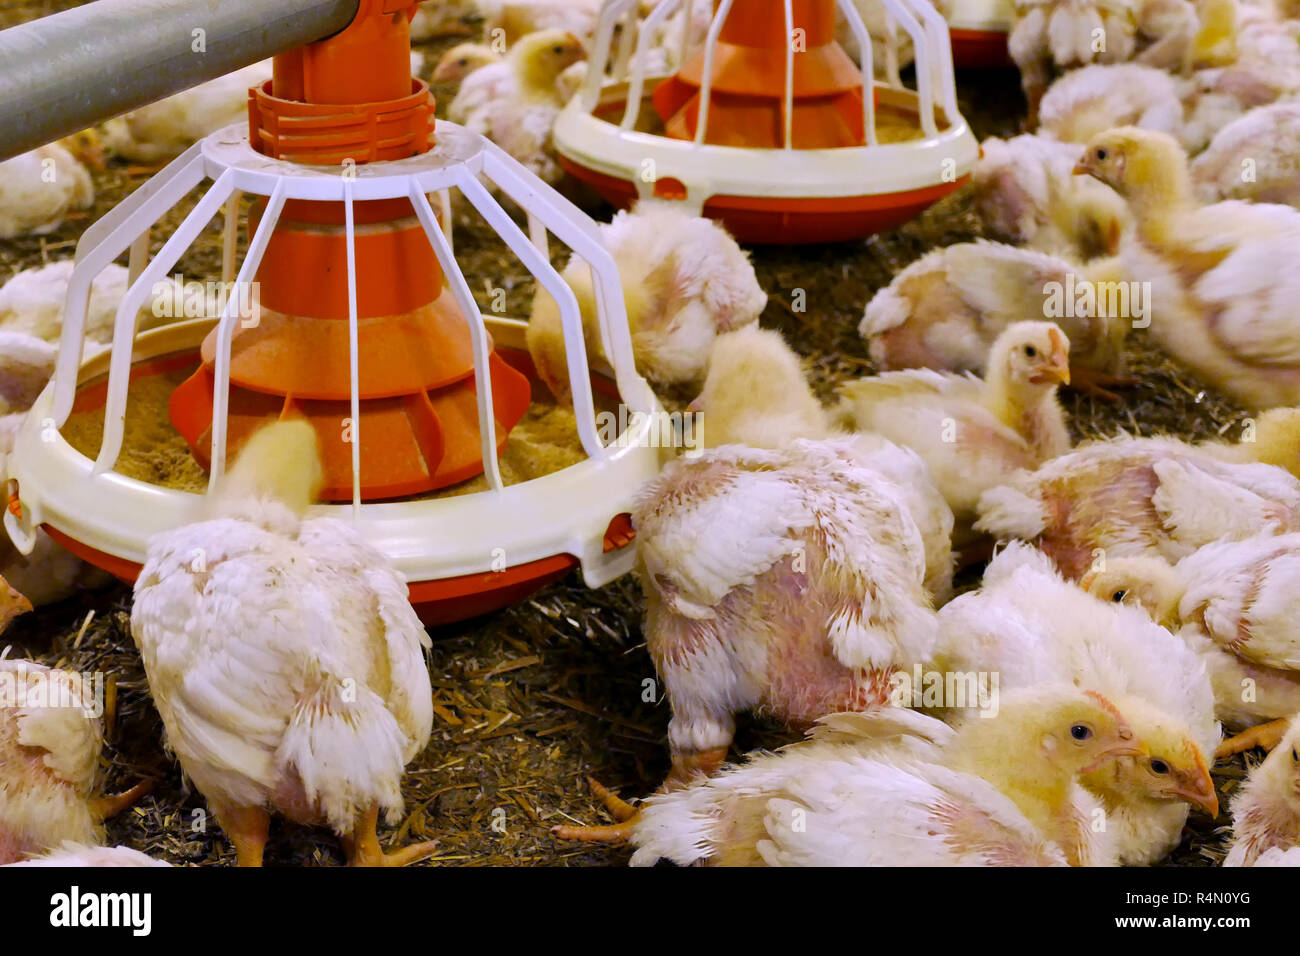 Chickens for fattening on a modern poultry farm - Stock Image